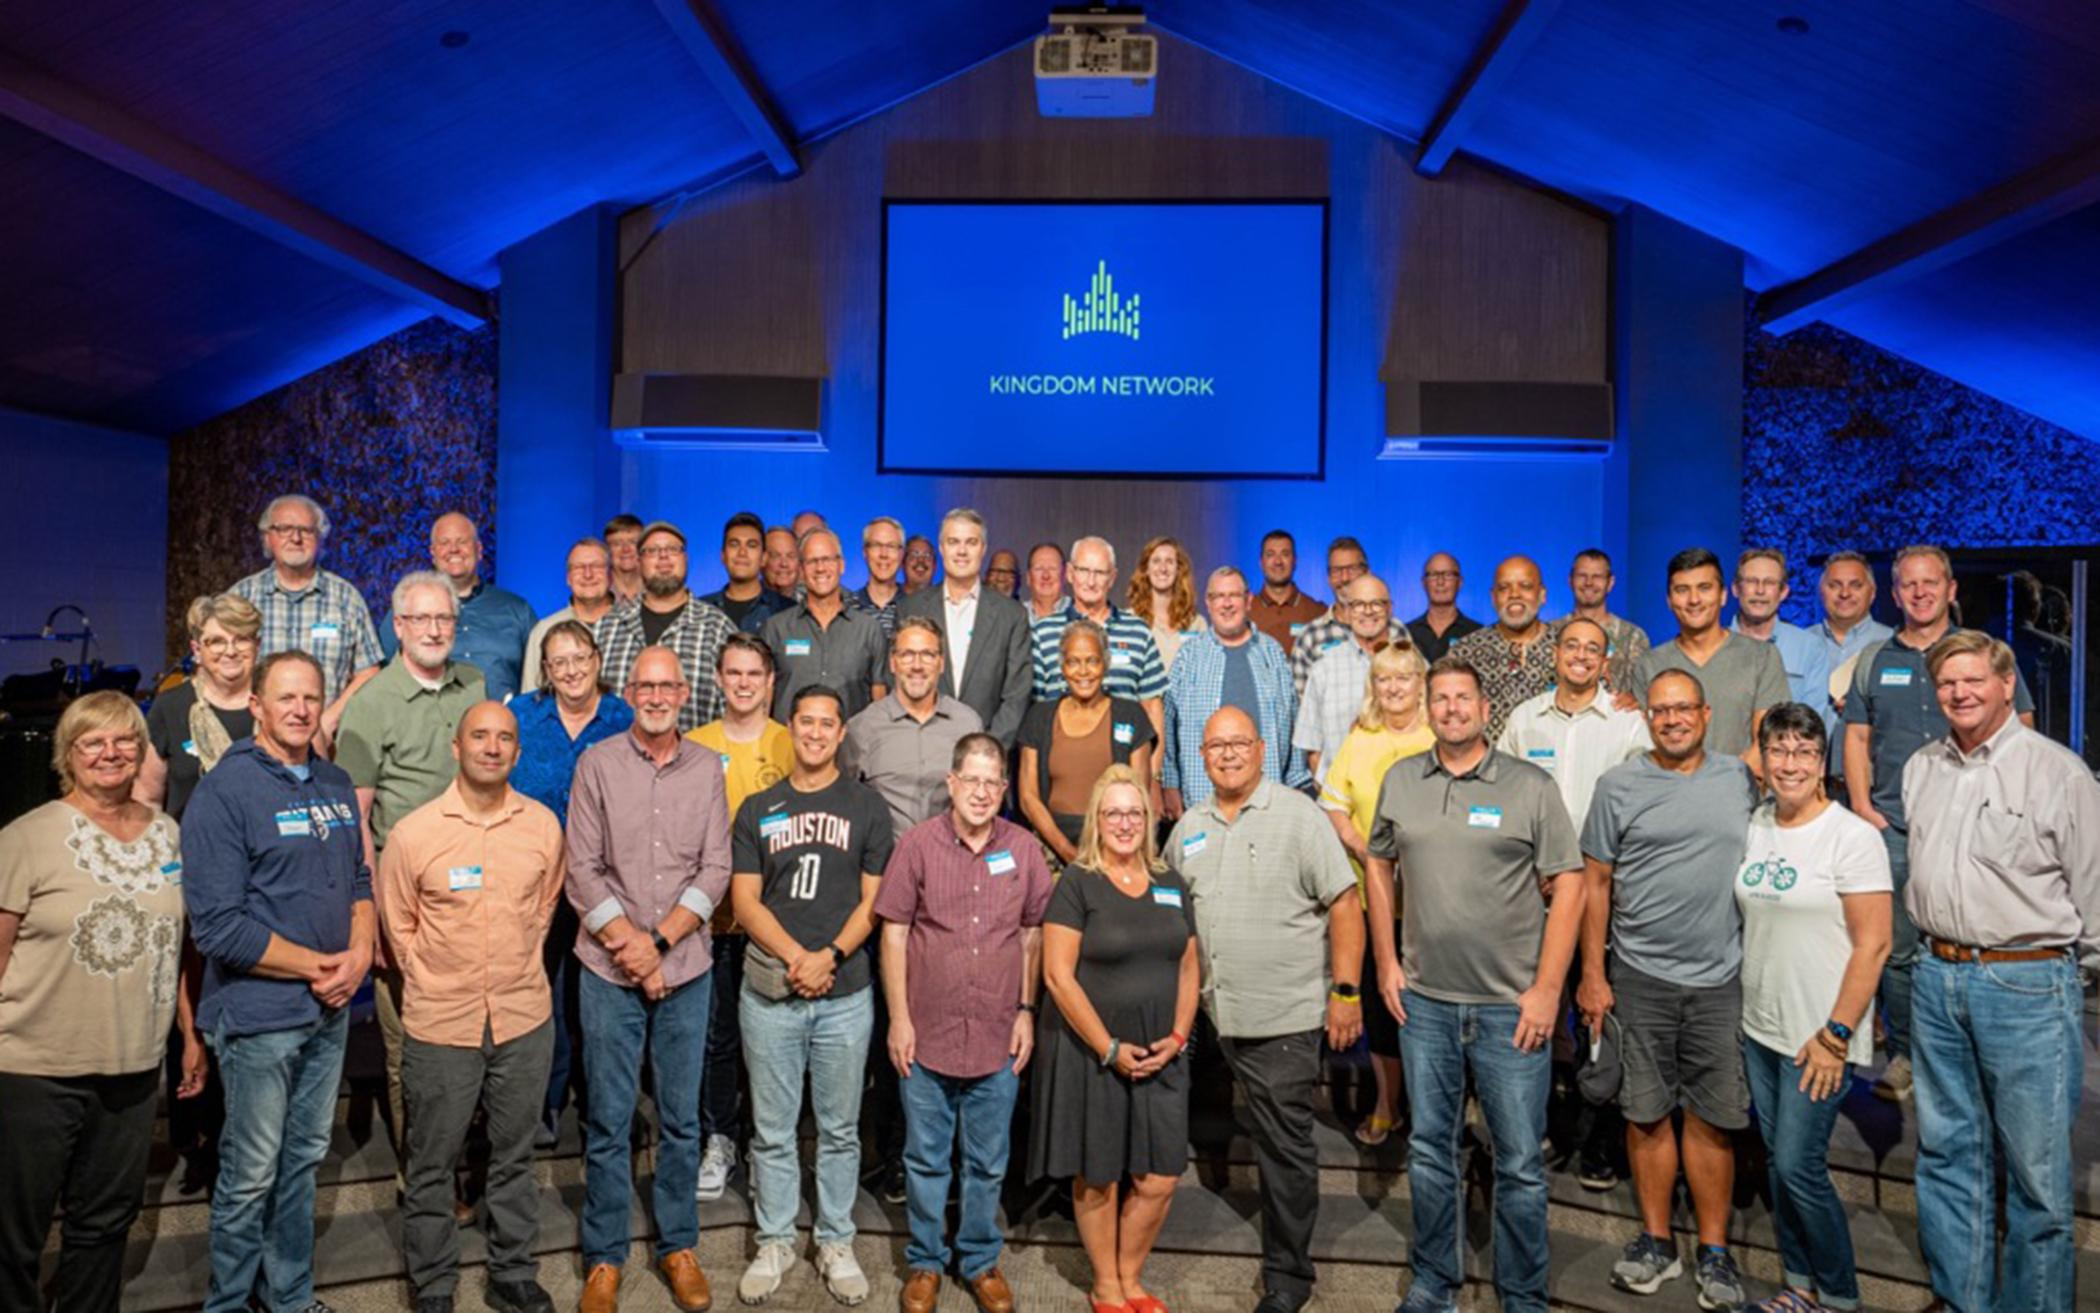 Former RCA Churches in Illinois, Indiana Launch 'Kingdom Network'